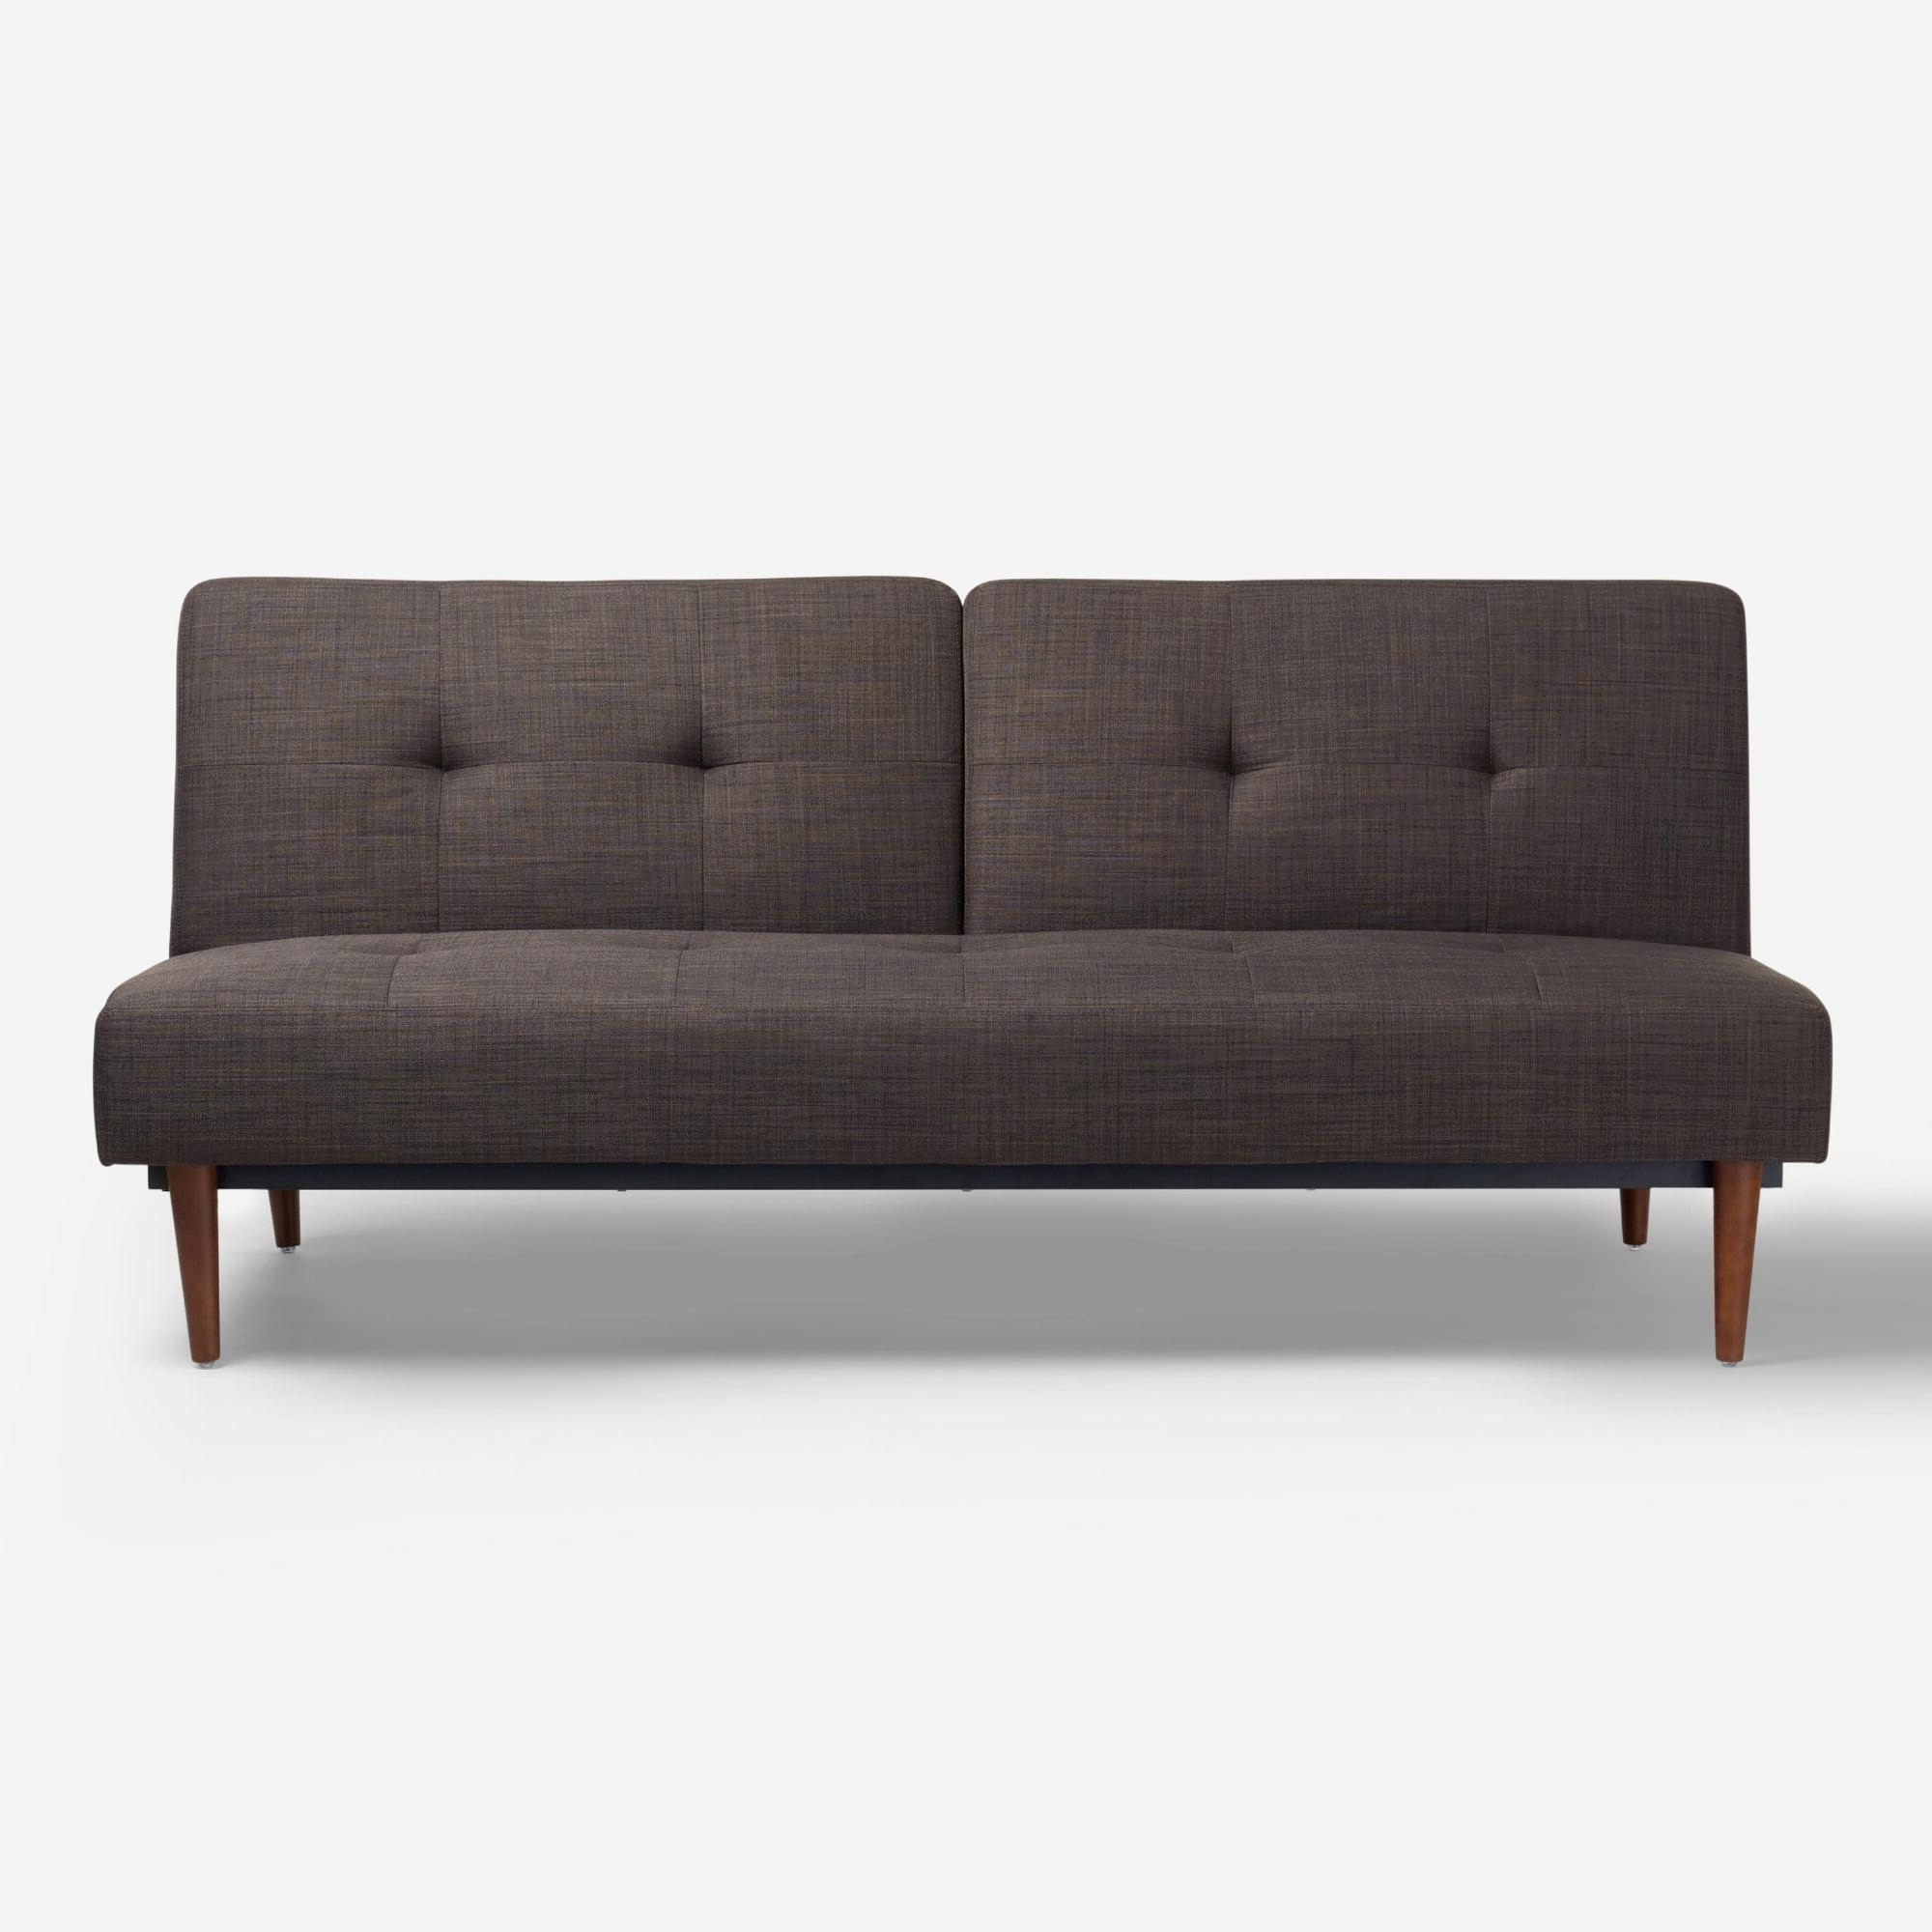 Most Recent Affordable Tufted Sofas In Lovely Affordable Tufted Sofa 2018 – Couches And Sofas Ideas (View 14 of 20)